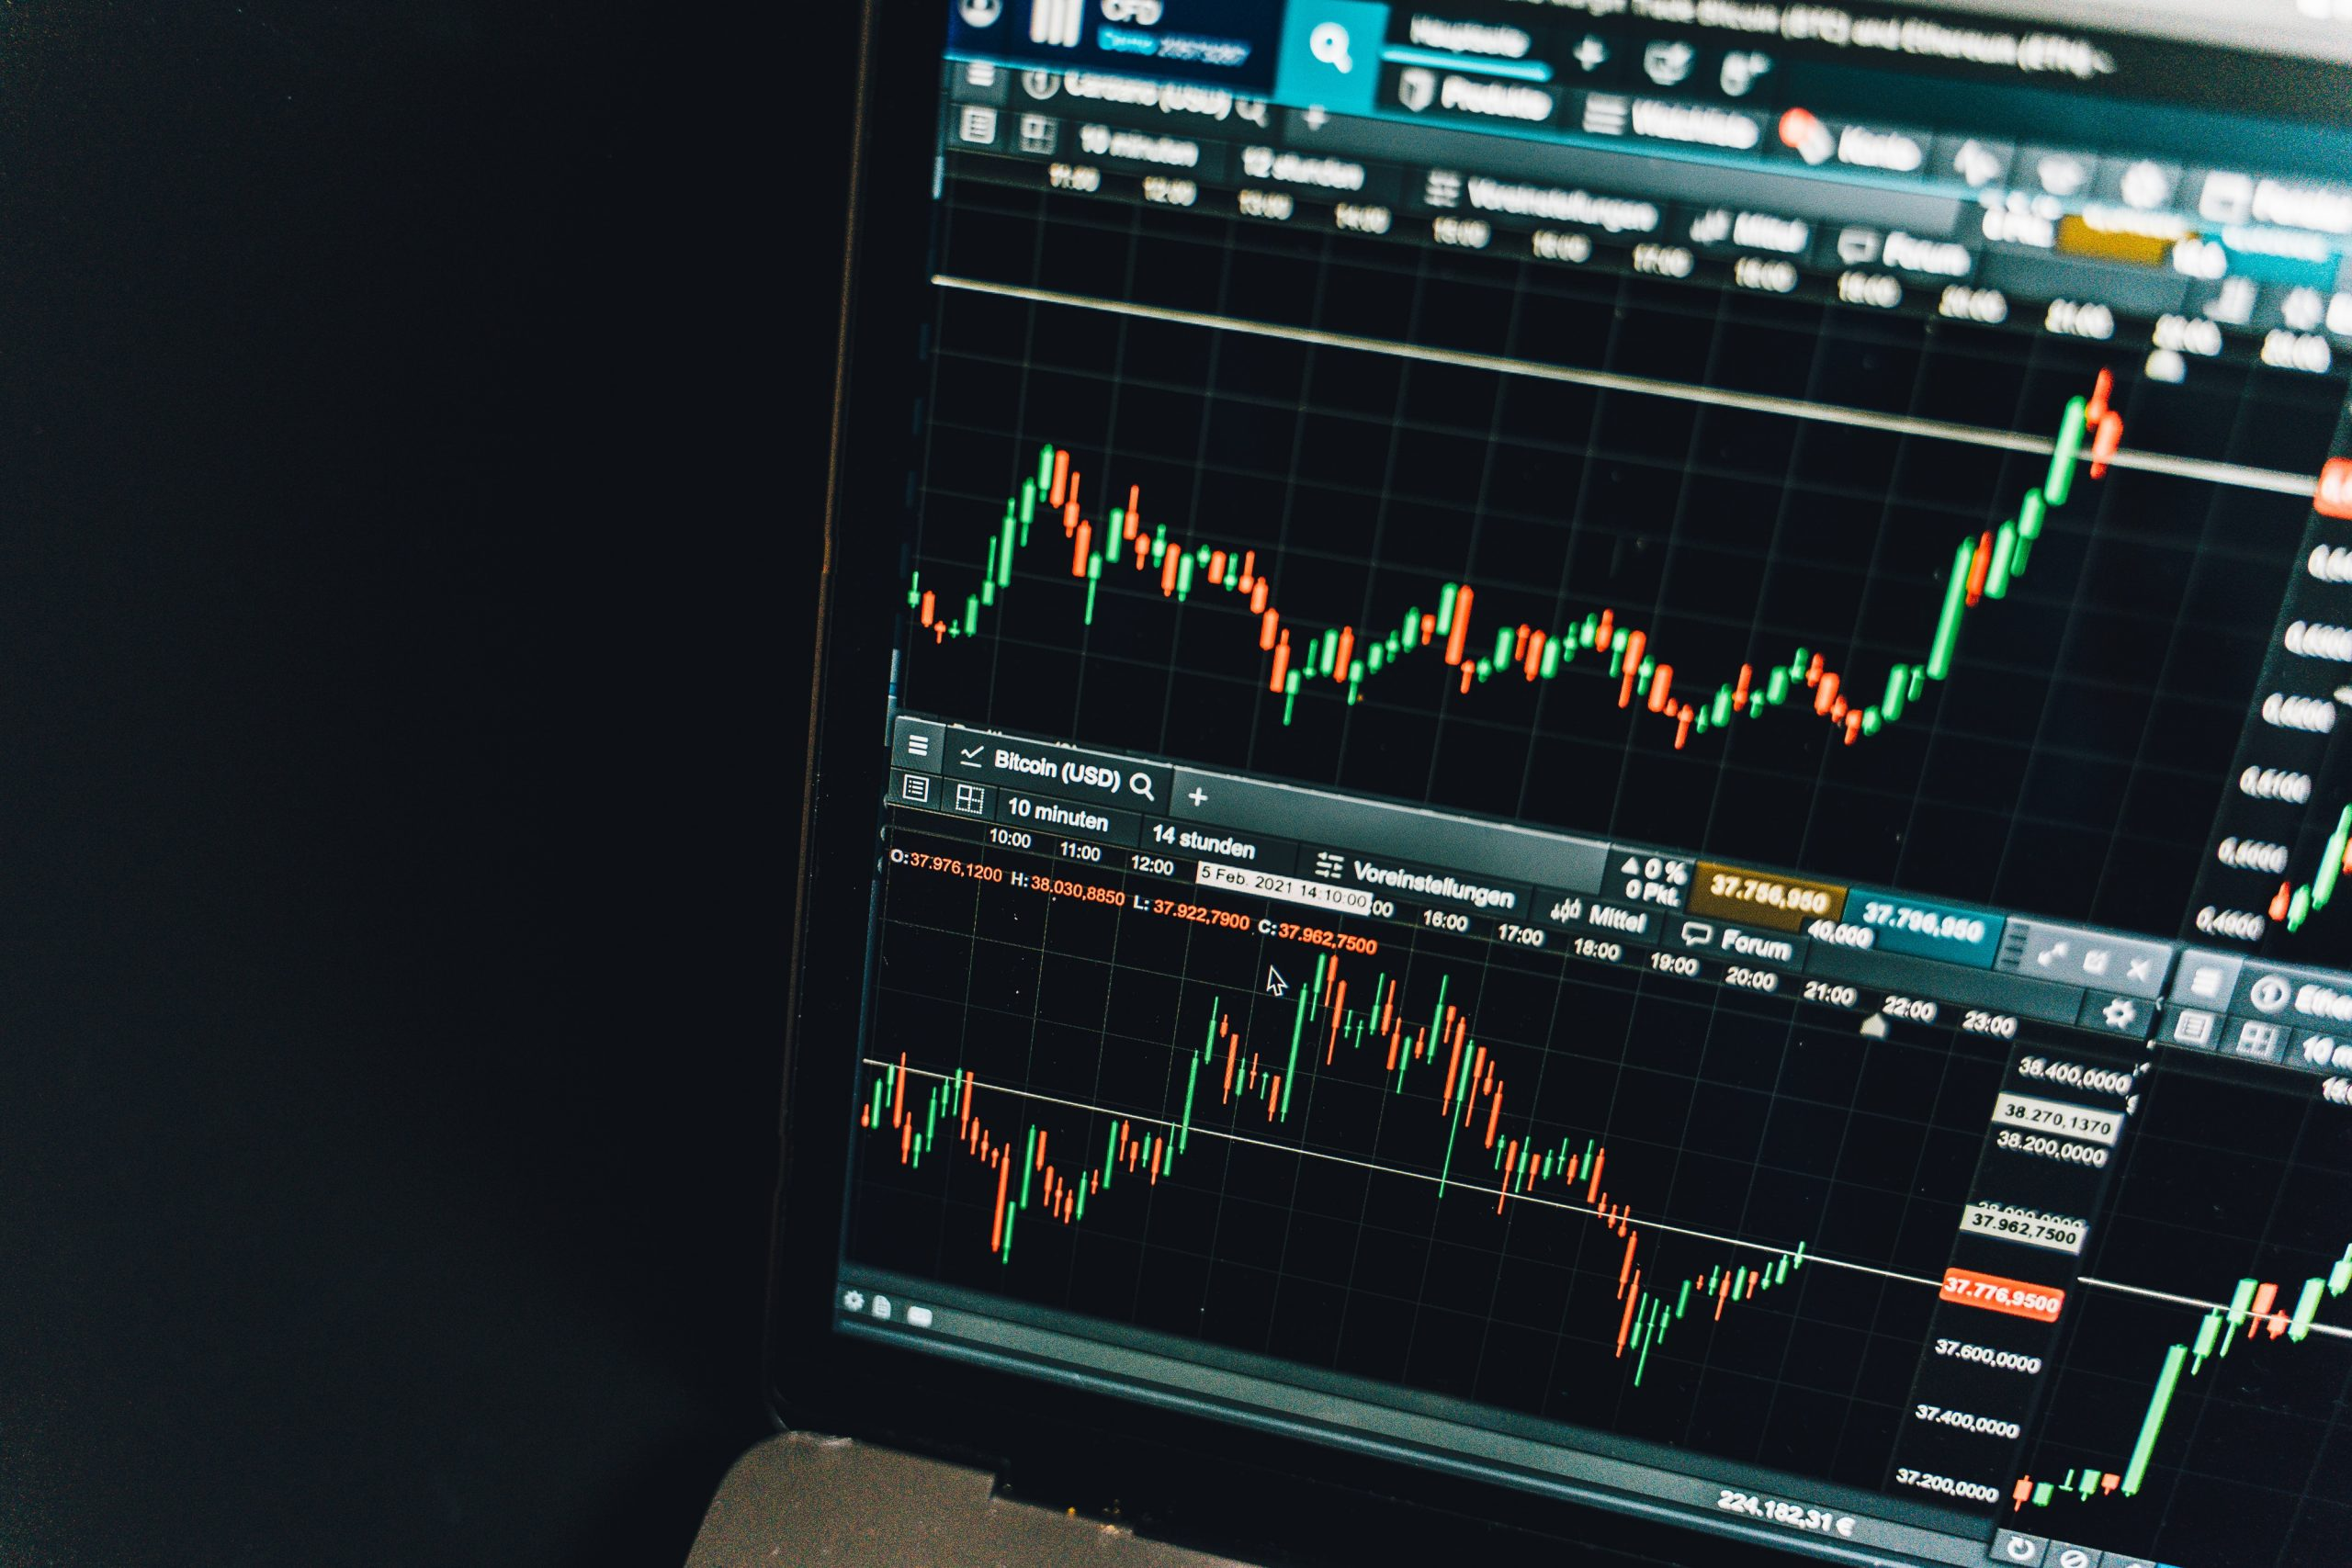 3 Issues You Can Solve with Moving Average